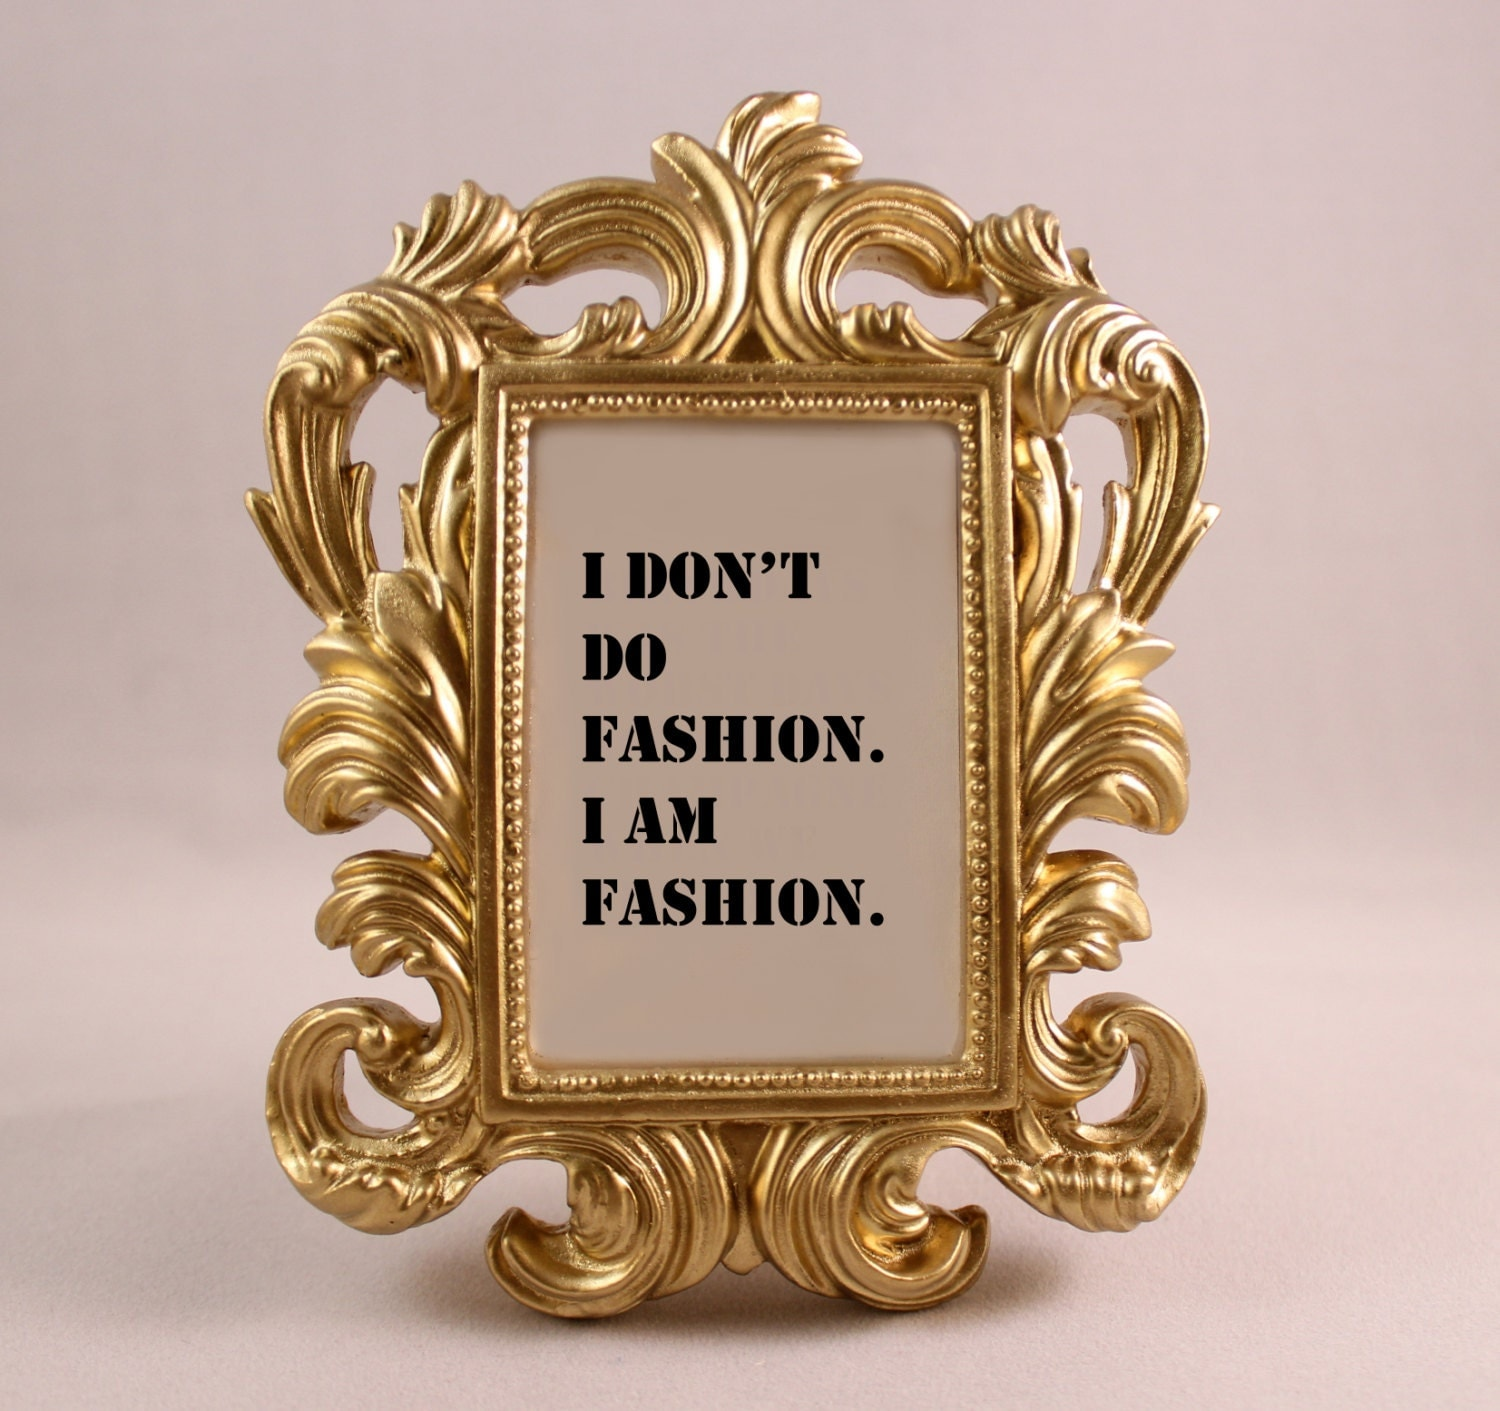 custom framed quote coco chanel fashion quote i am fashion motivational inspriational home decor gift office desk decor ornate frame stencil